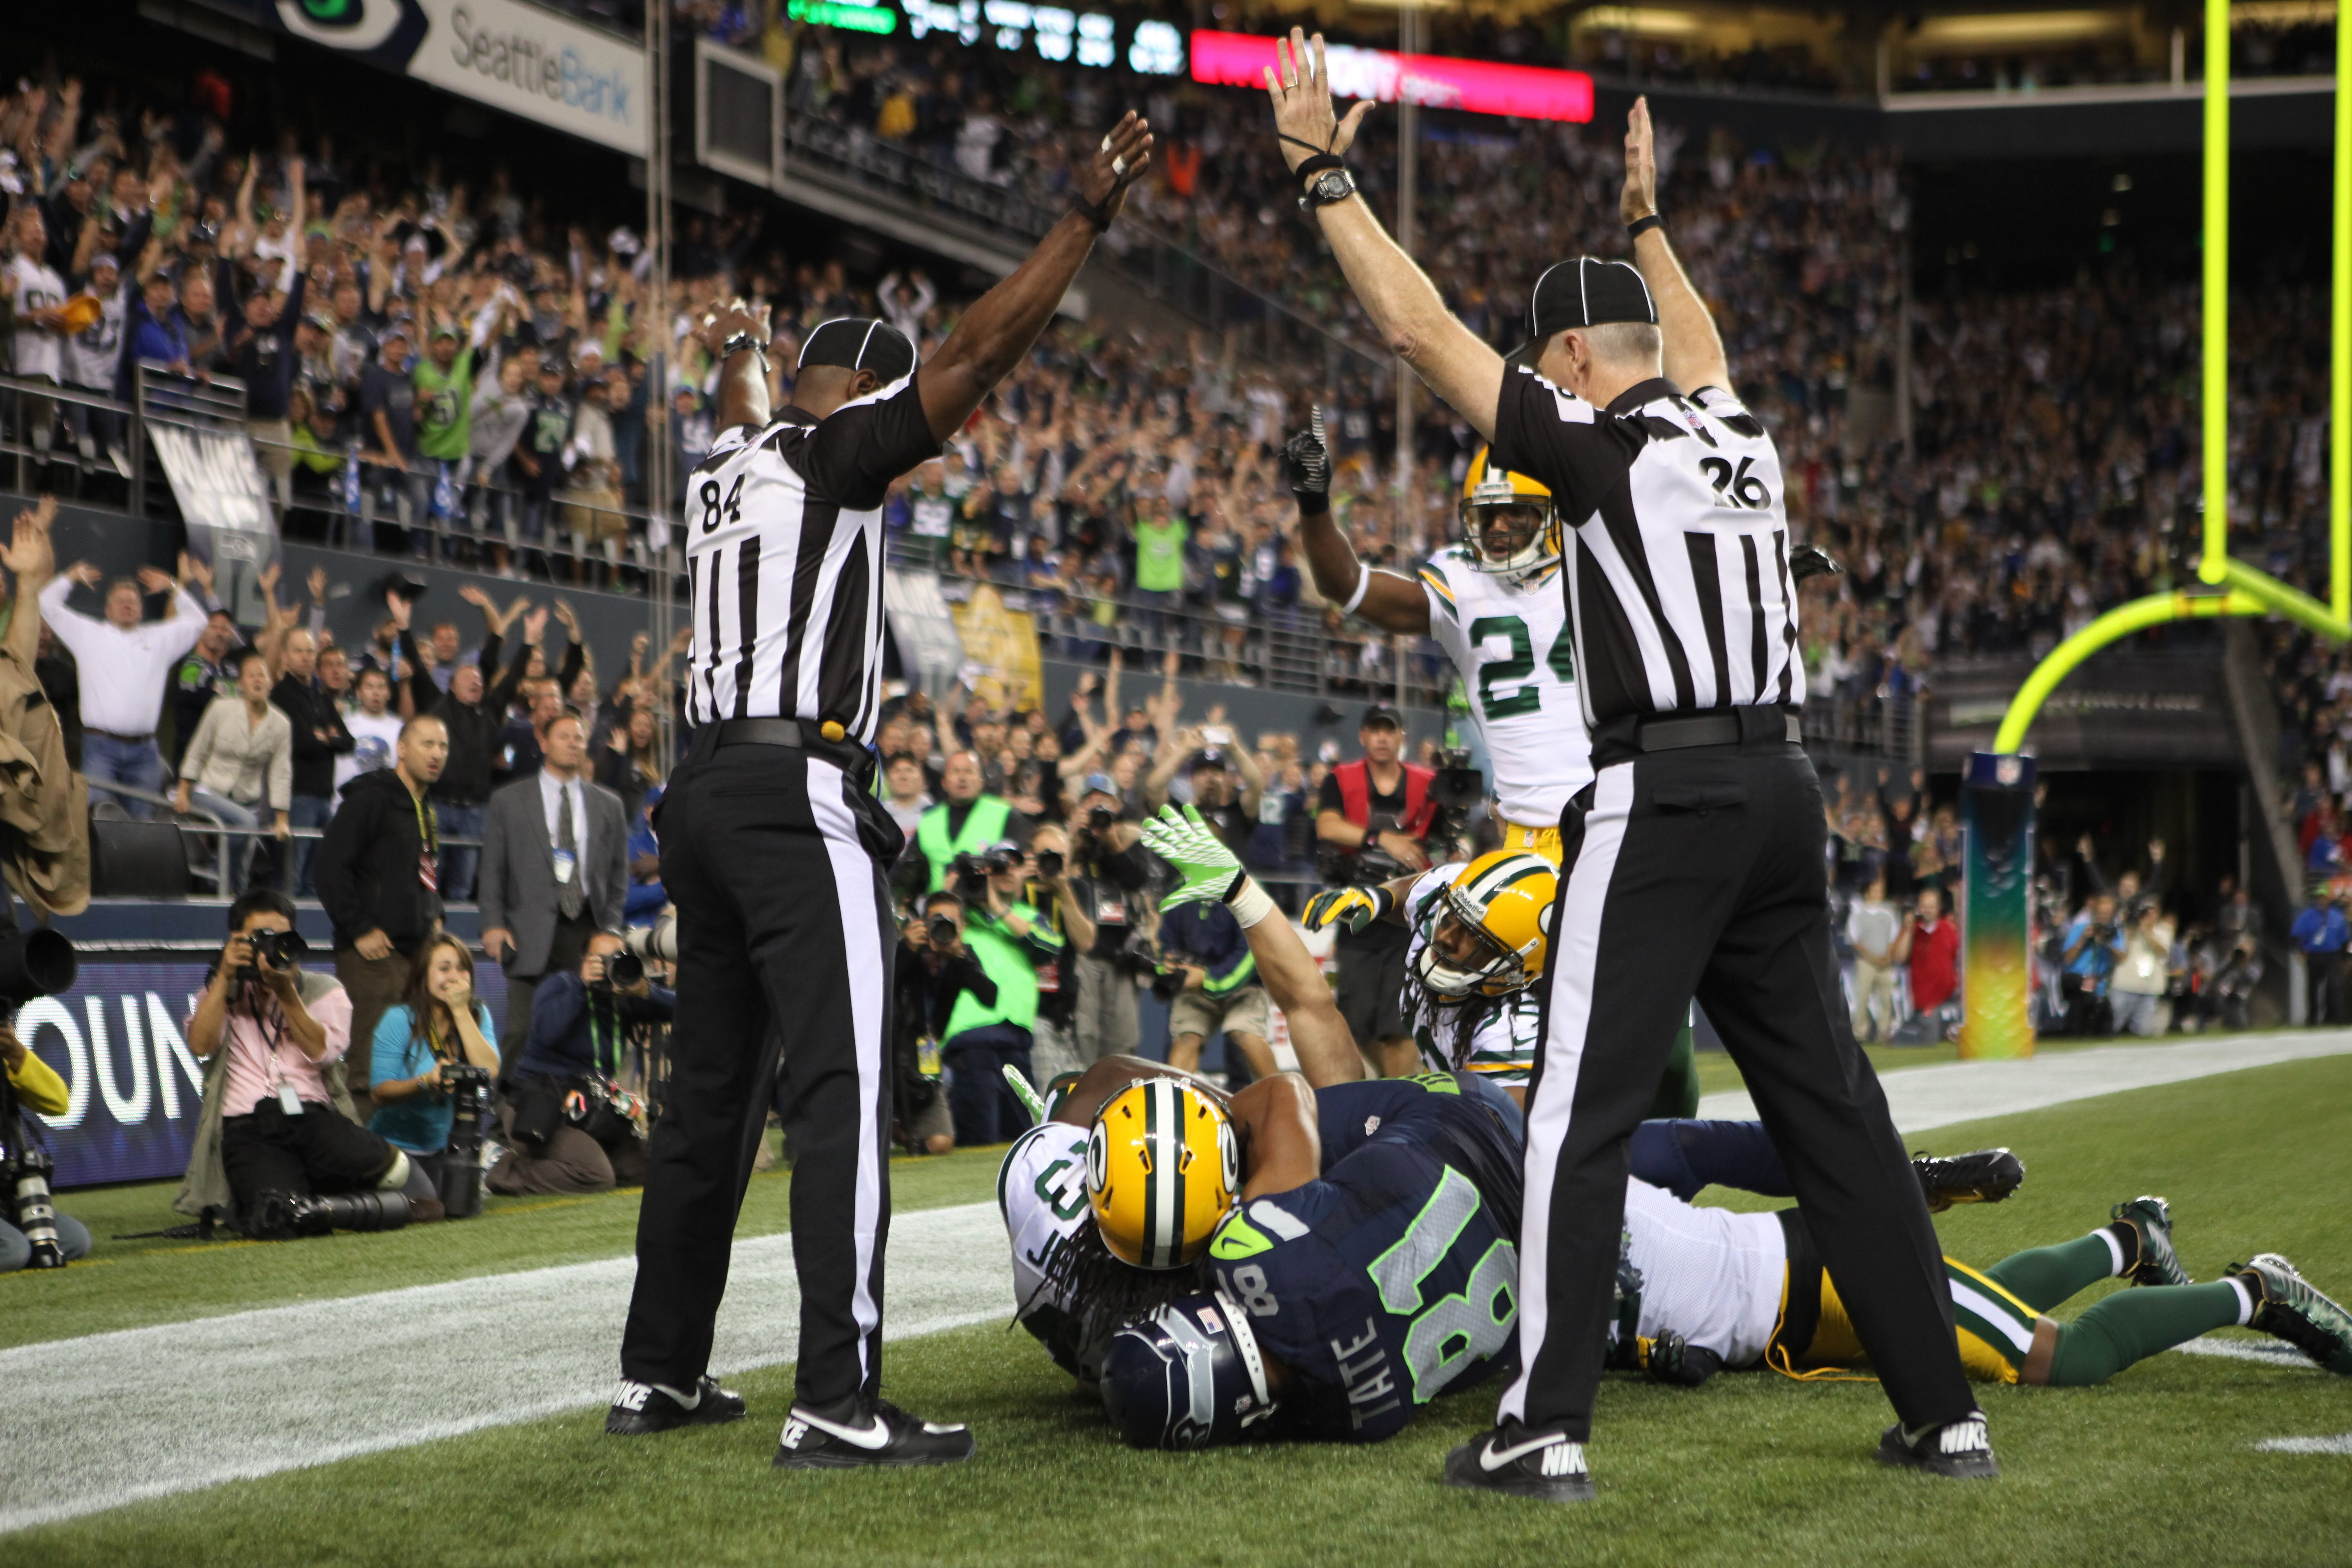 Officials in the end zone on the last play in Monday night's game called the play differently. The ruling on the field awarded Seattle receiver Golden Tate a touchdown for a simultaneous catch. (Getty Images)